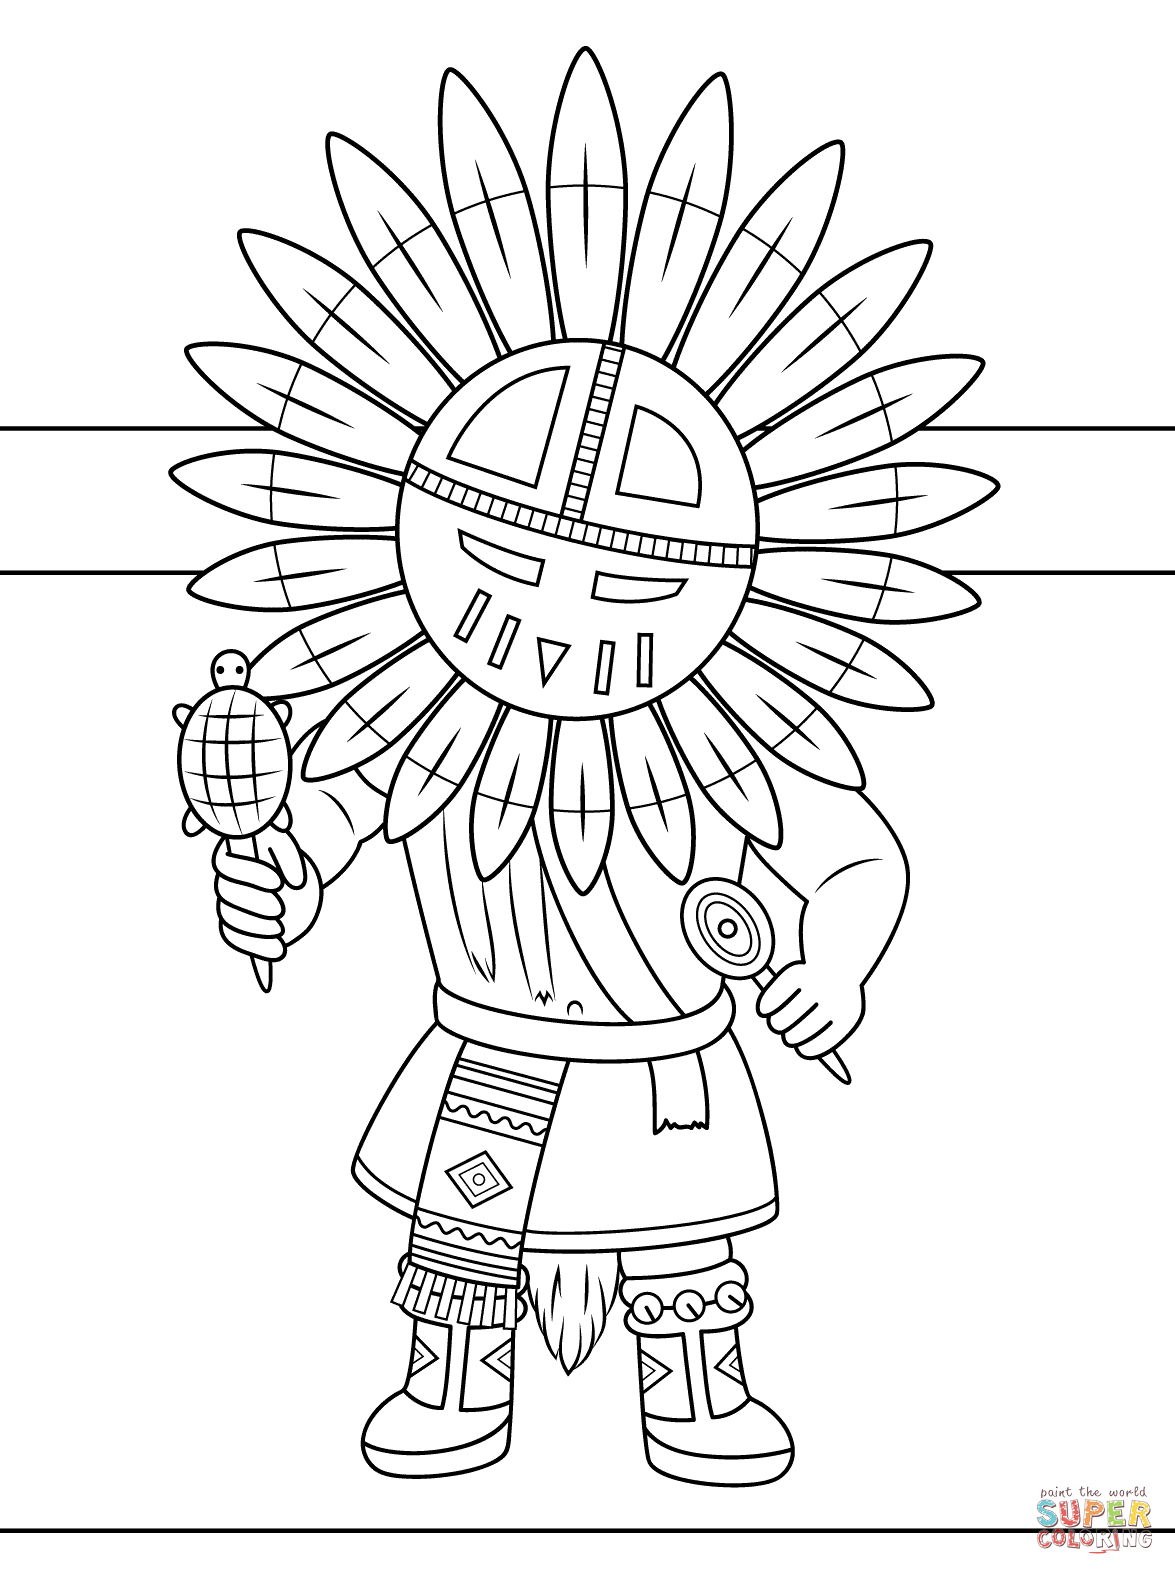 Native American Designs Coloring Pages Printables